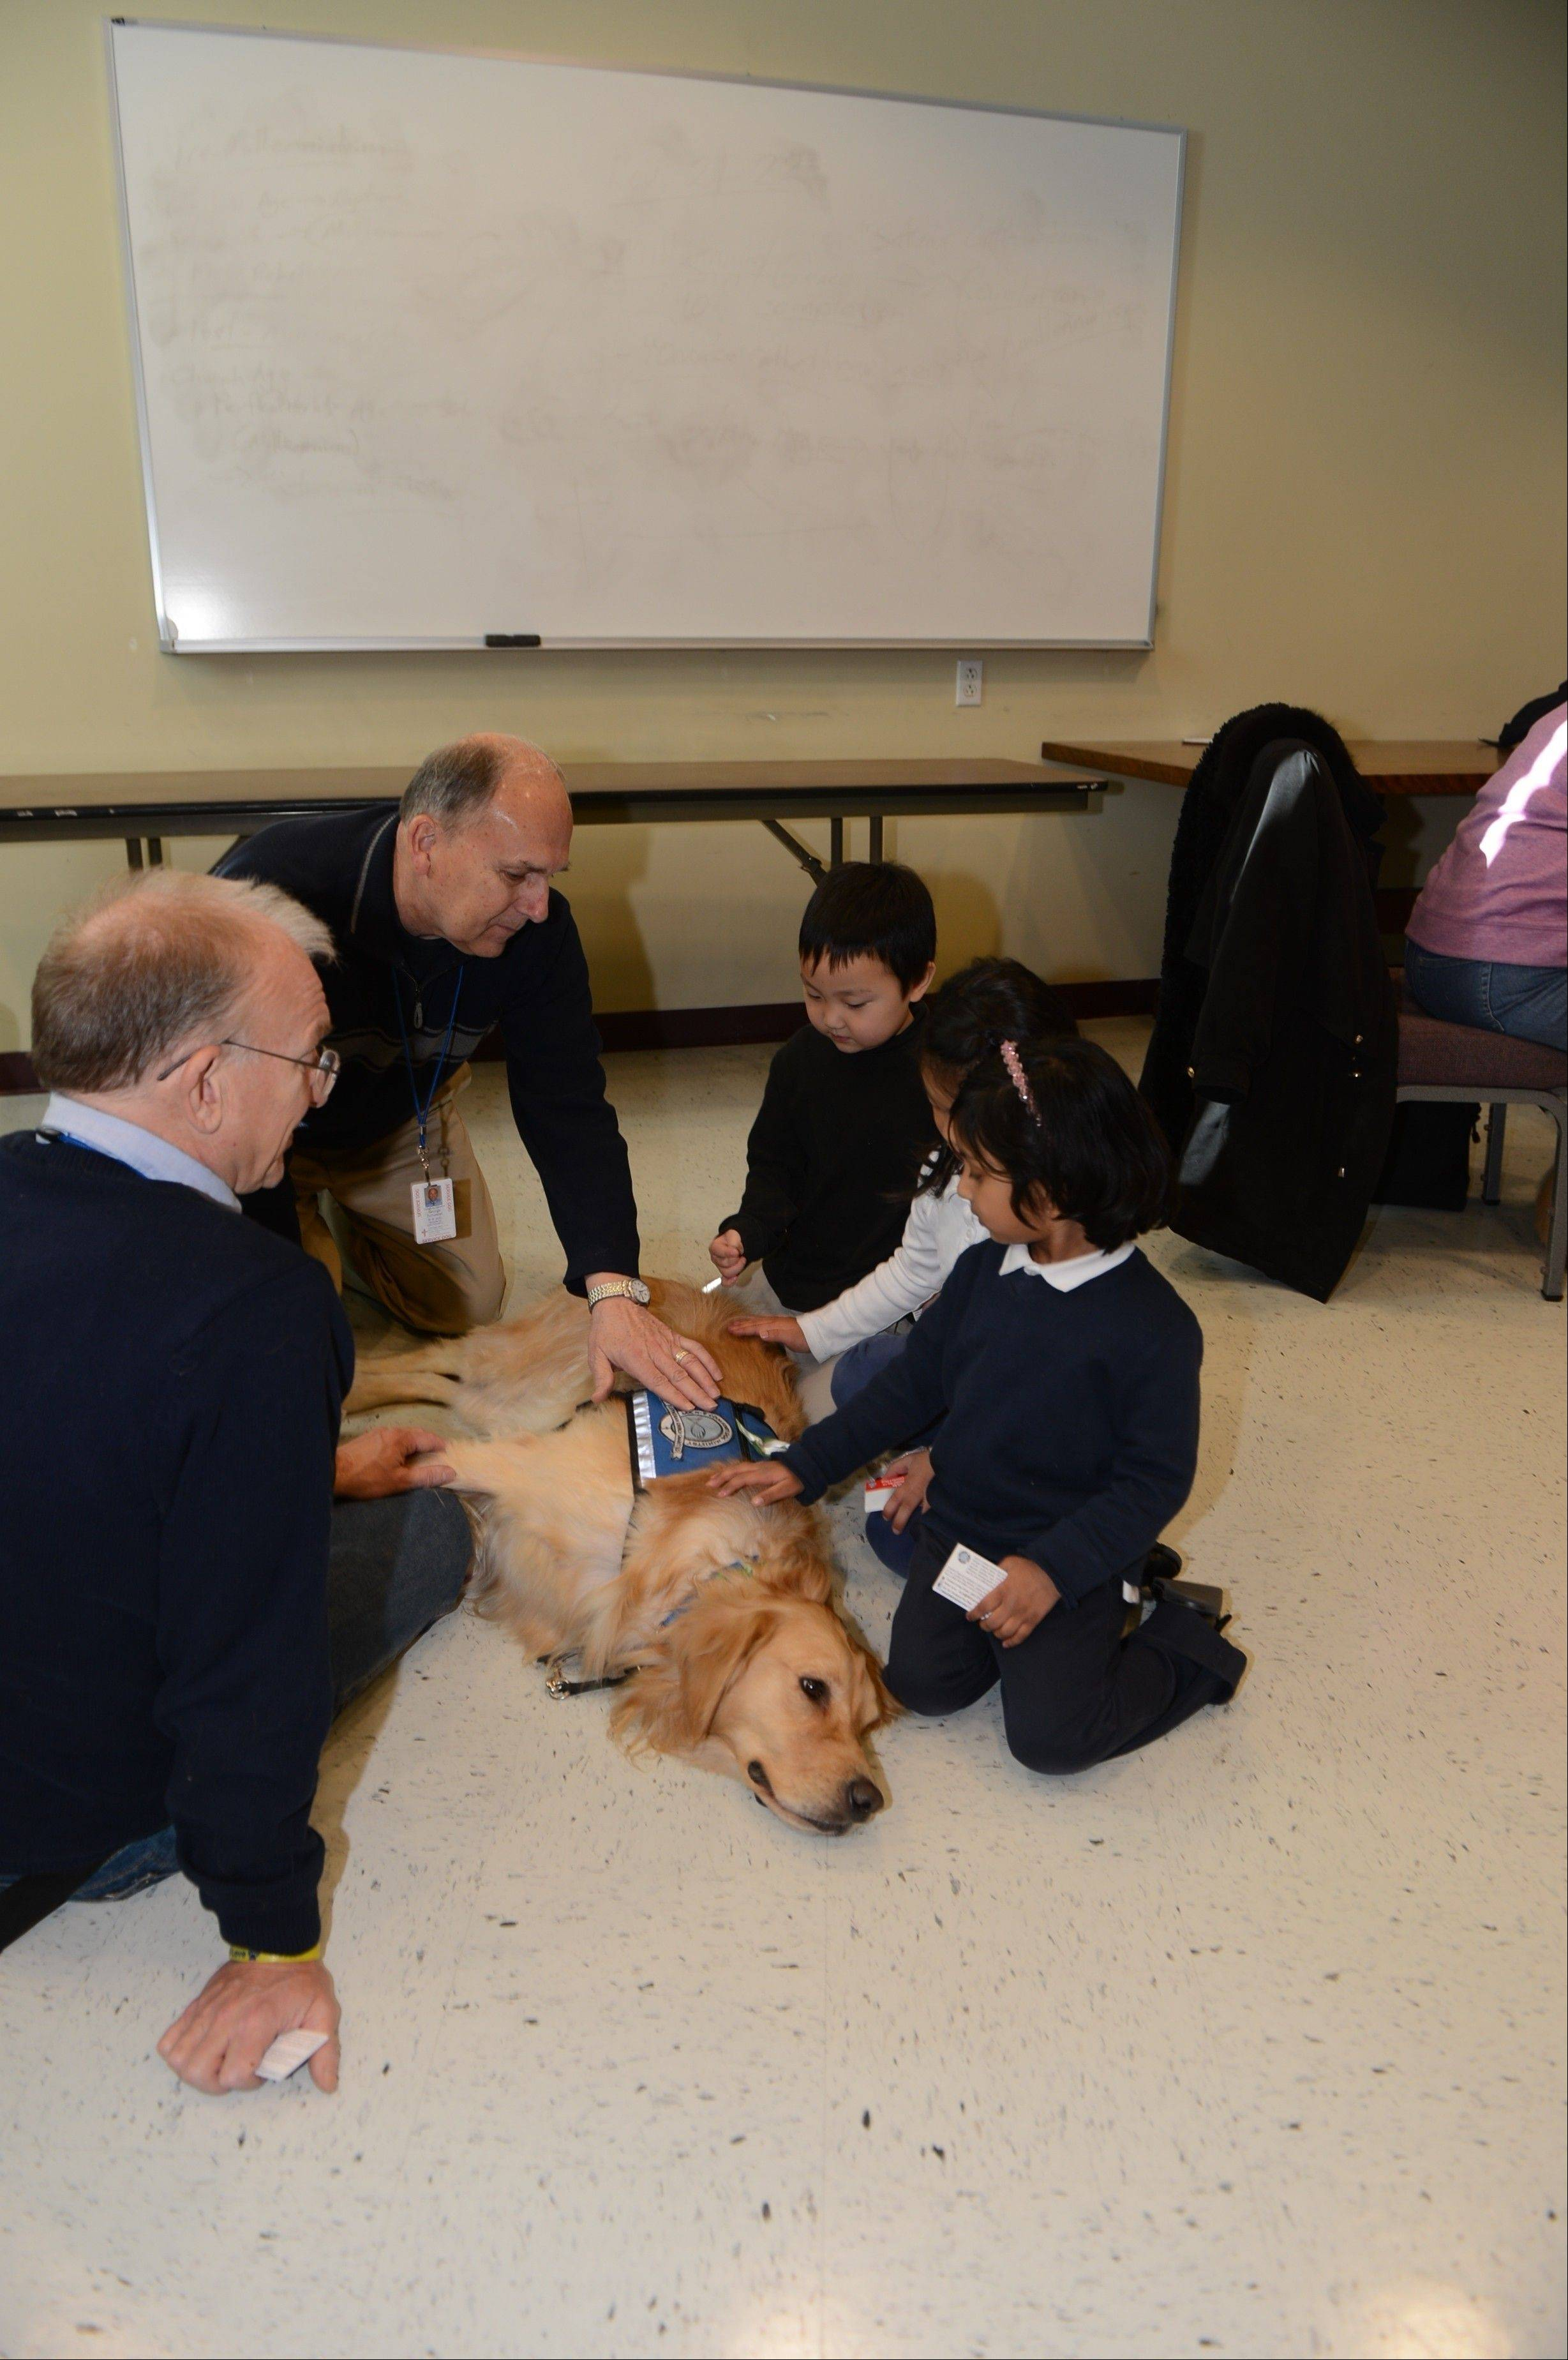 Pastor Paul Klopke, left, of Living Christ Lutheran Church in Arlington Heights, George Schiestel of Arlington Heights and comfort dog JoJo visit with children at the Lutheran school in Danbury, Conn., this month following the school shootings in nearby Newtown. They also visited children who were in the school where the shootings occurred.